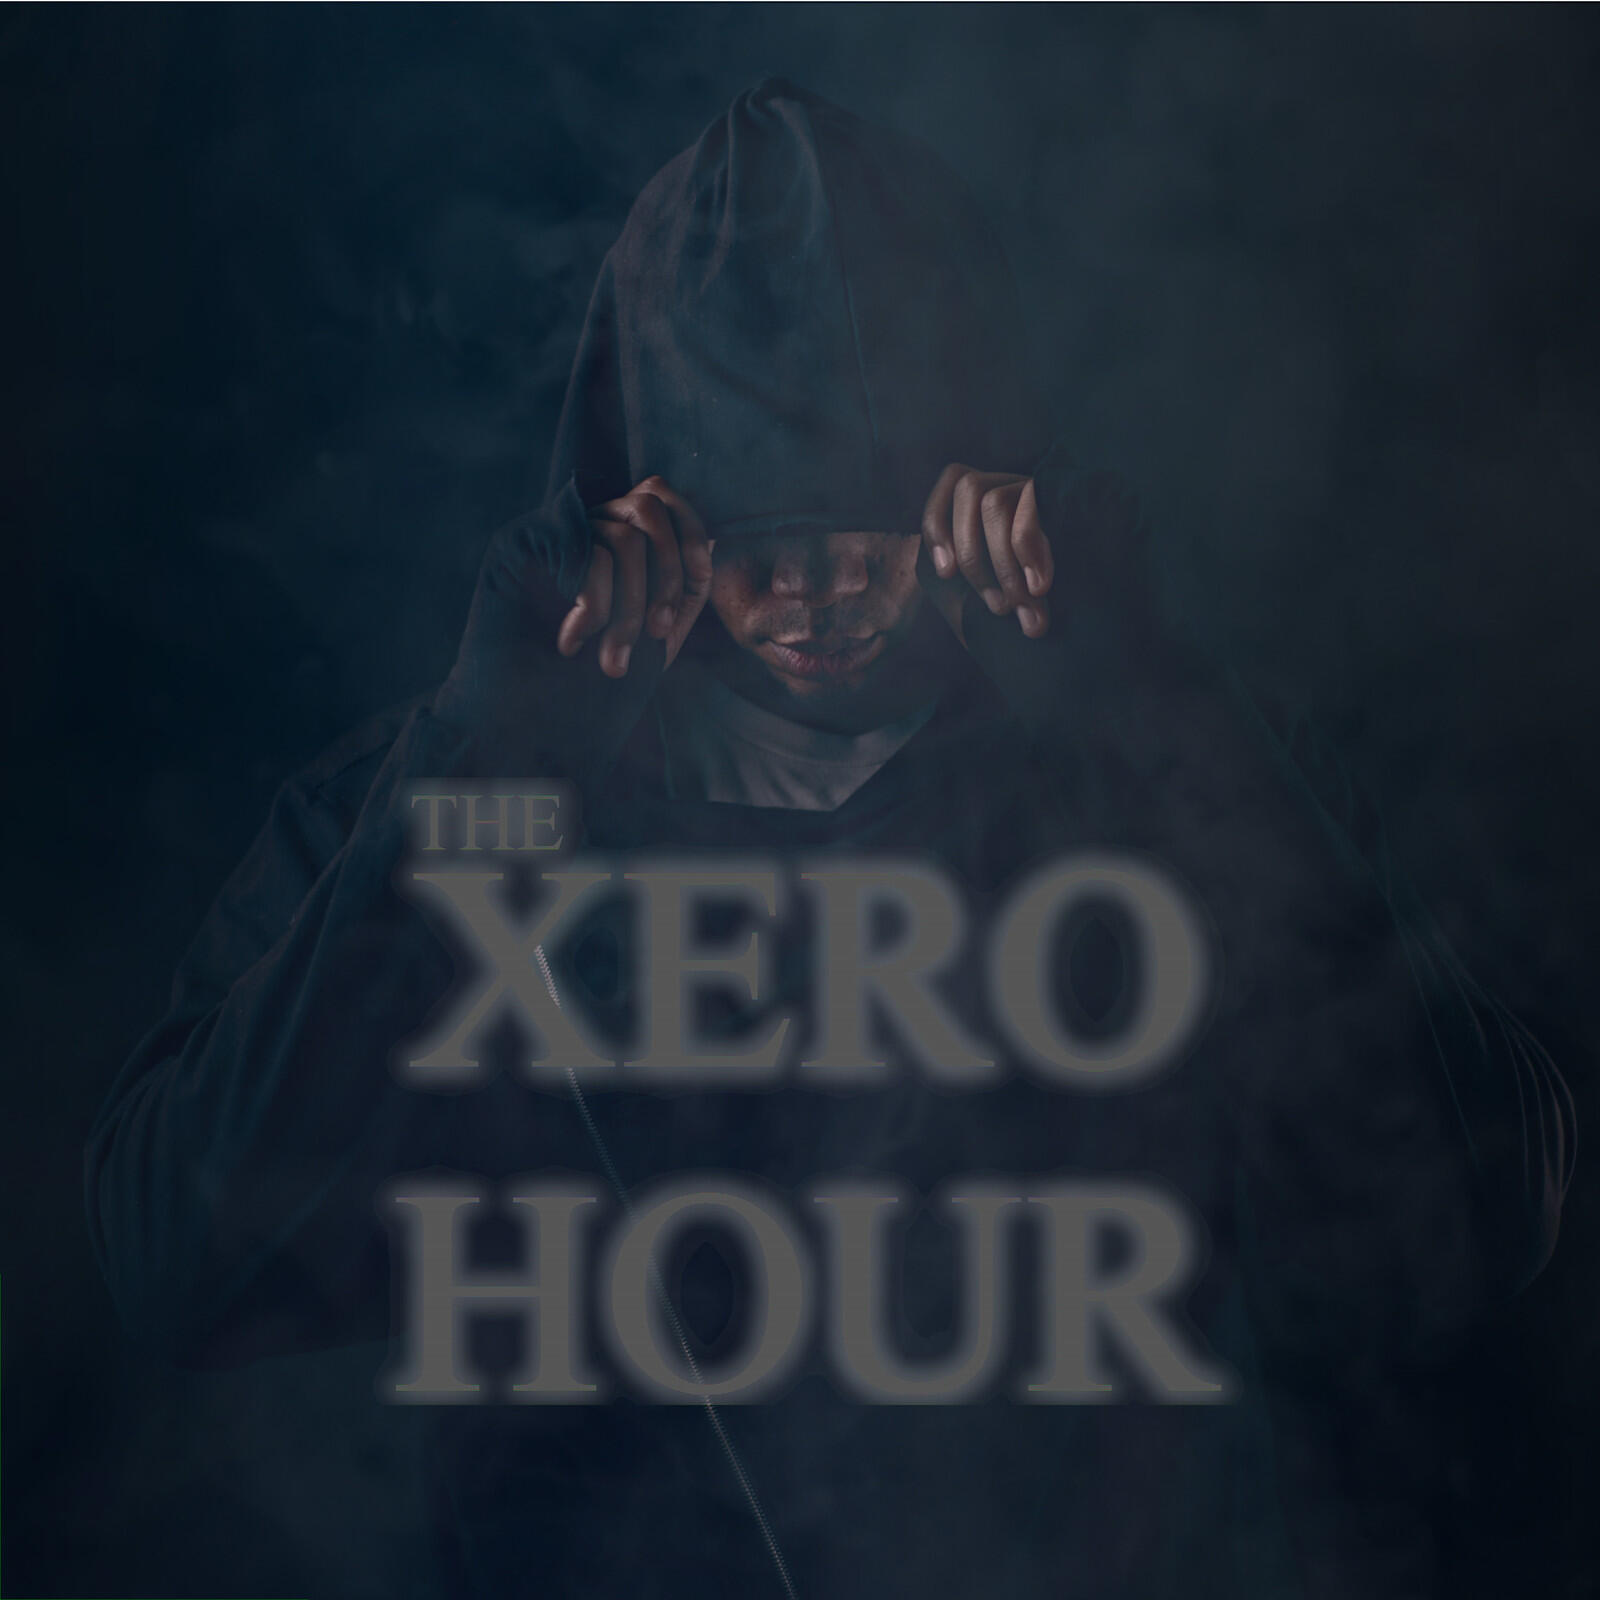 56: Xero Hour Podcast 56 - The Certified and Official Episode